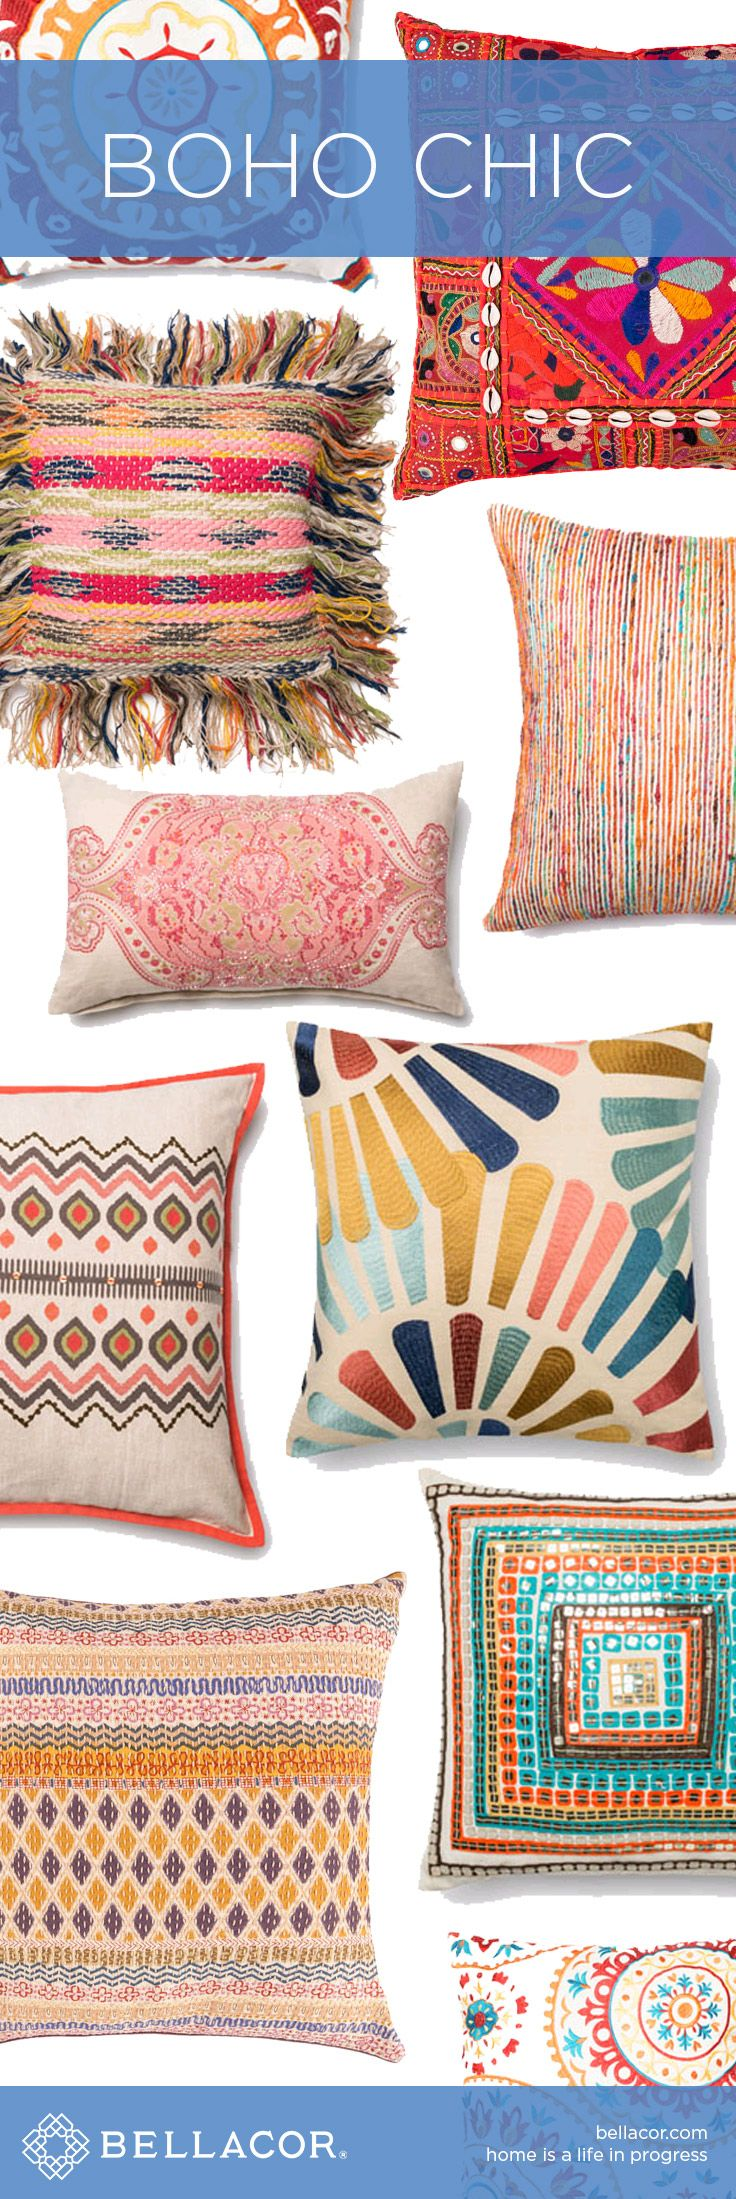 Shop our selection of Boho Chic Pillows, Bedding and Textiles at http://www.bellacor.com/